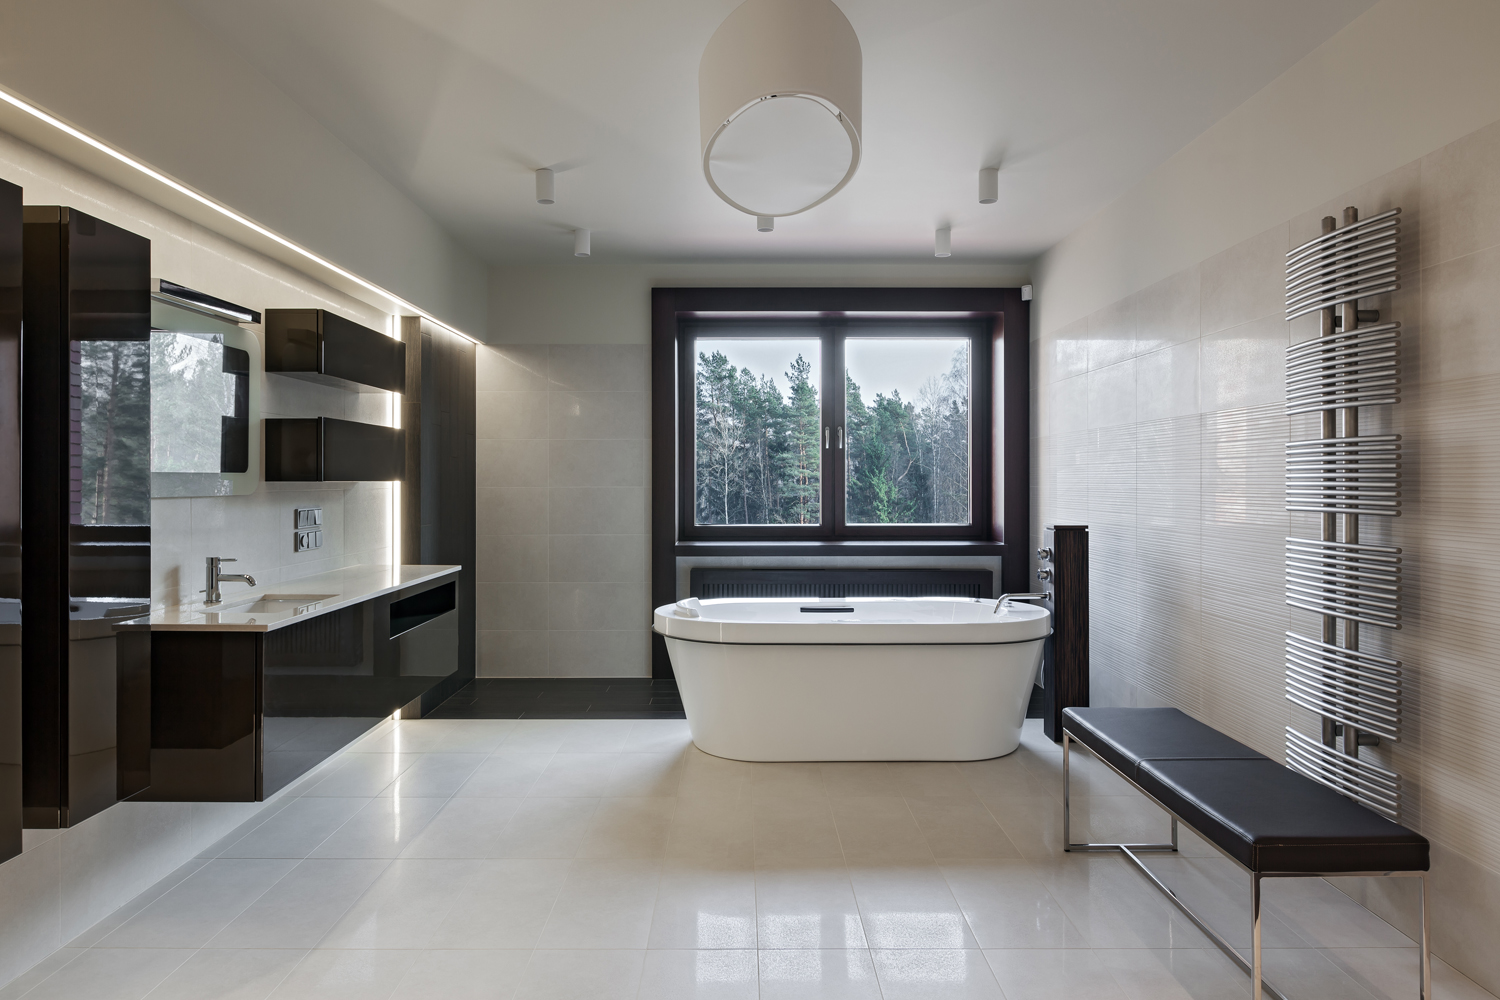 Interior of modern luxury minimalistic bathroom with window